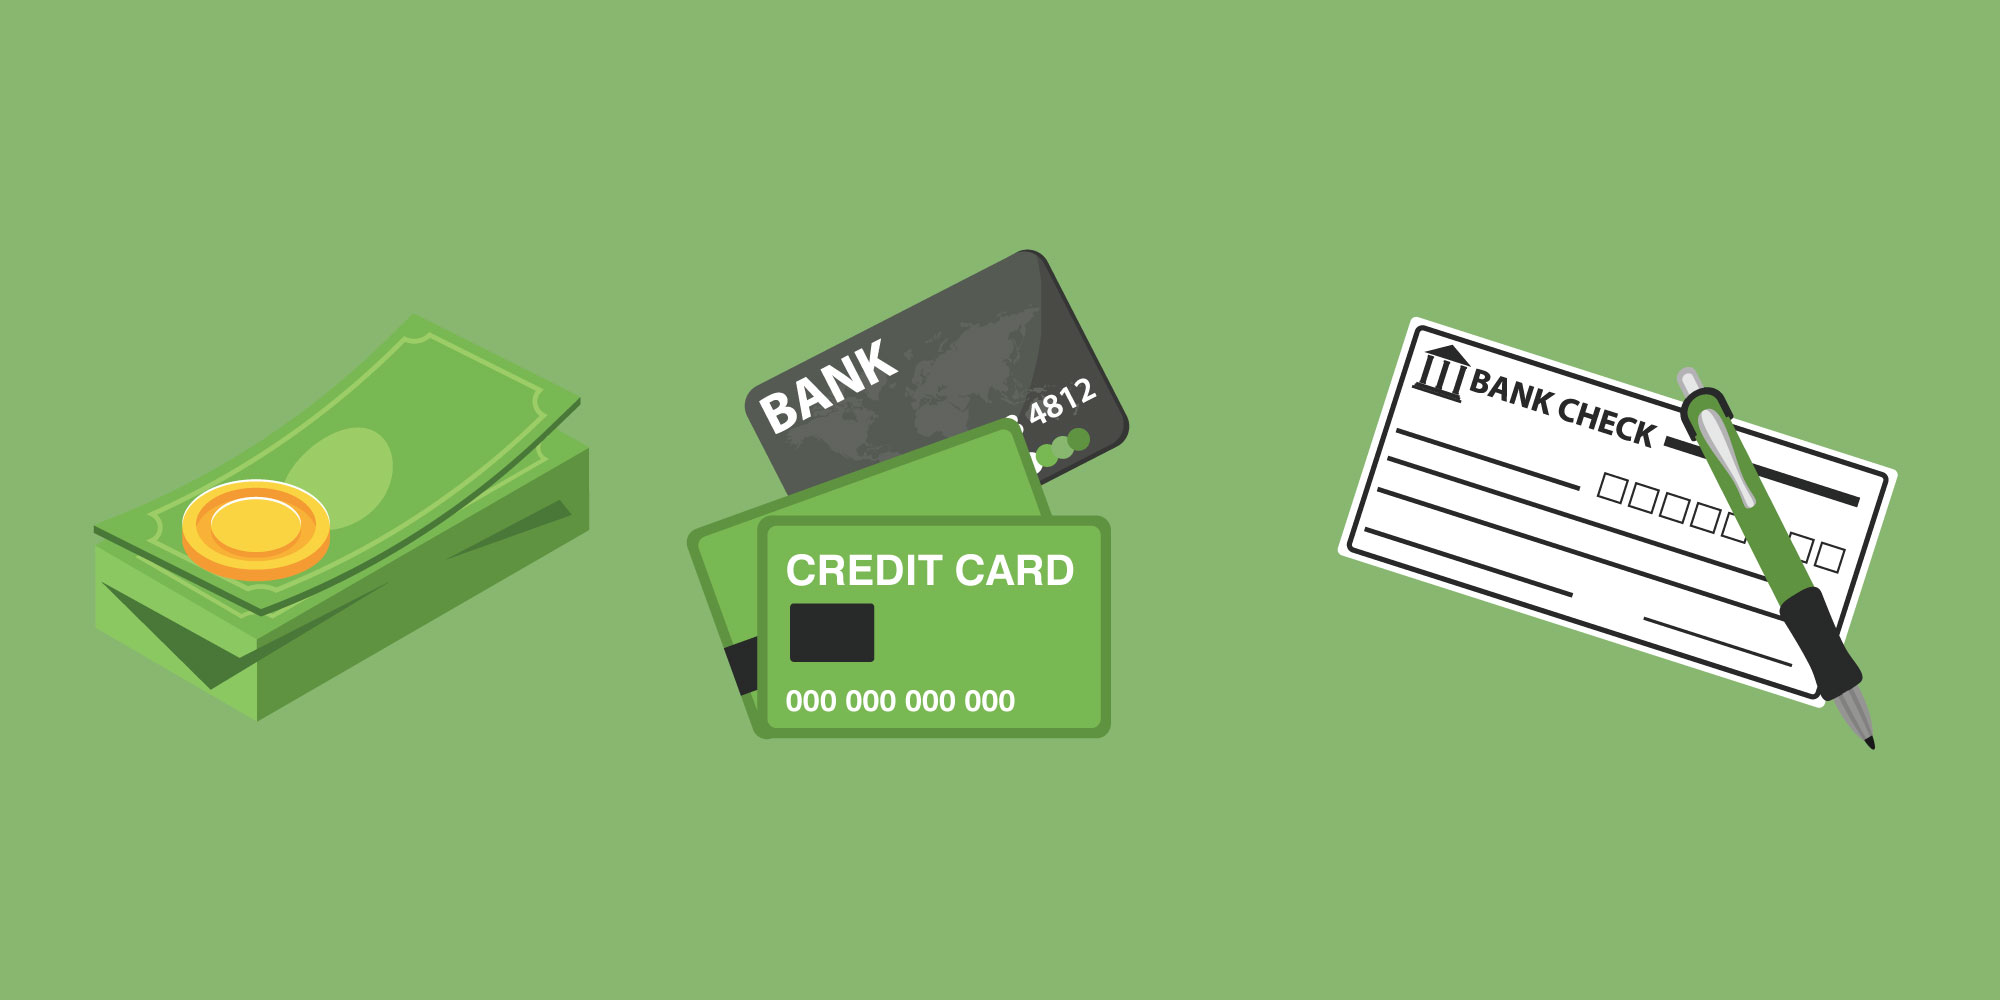 Can You Start a Business Using Credit Cards? - Due